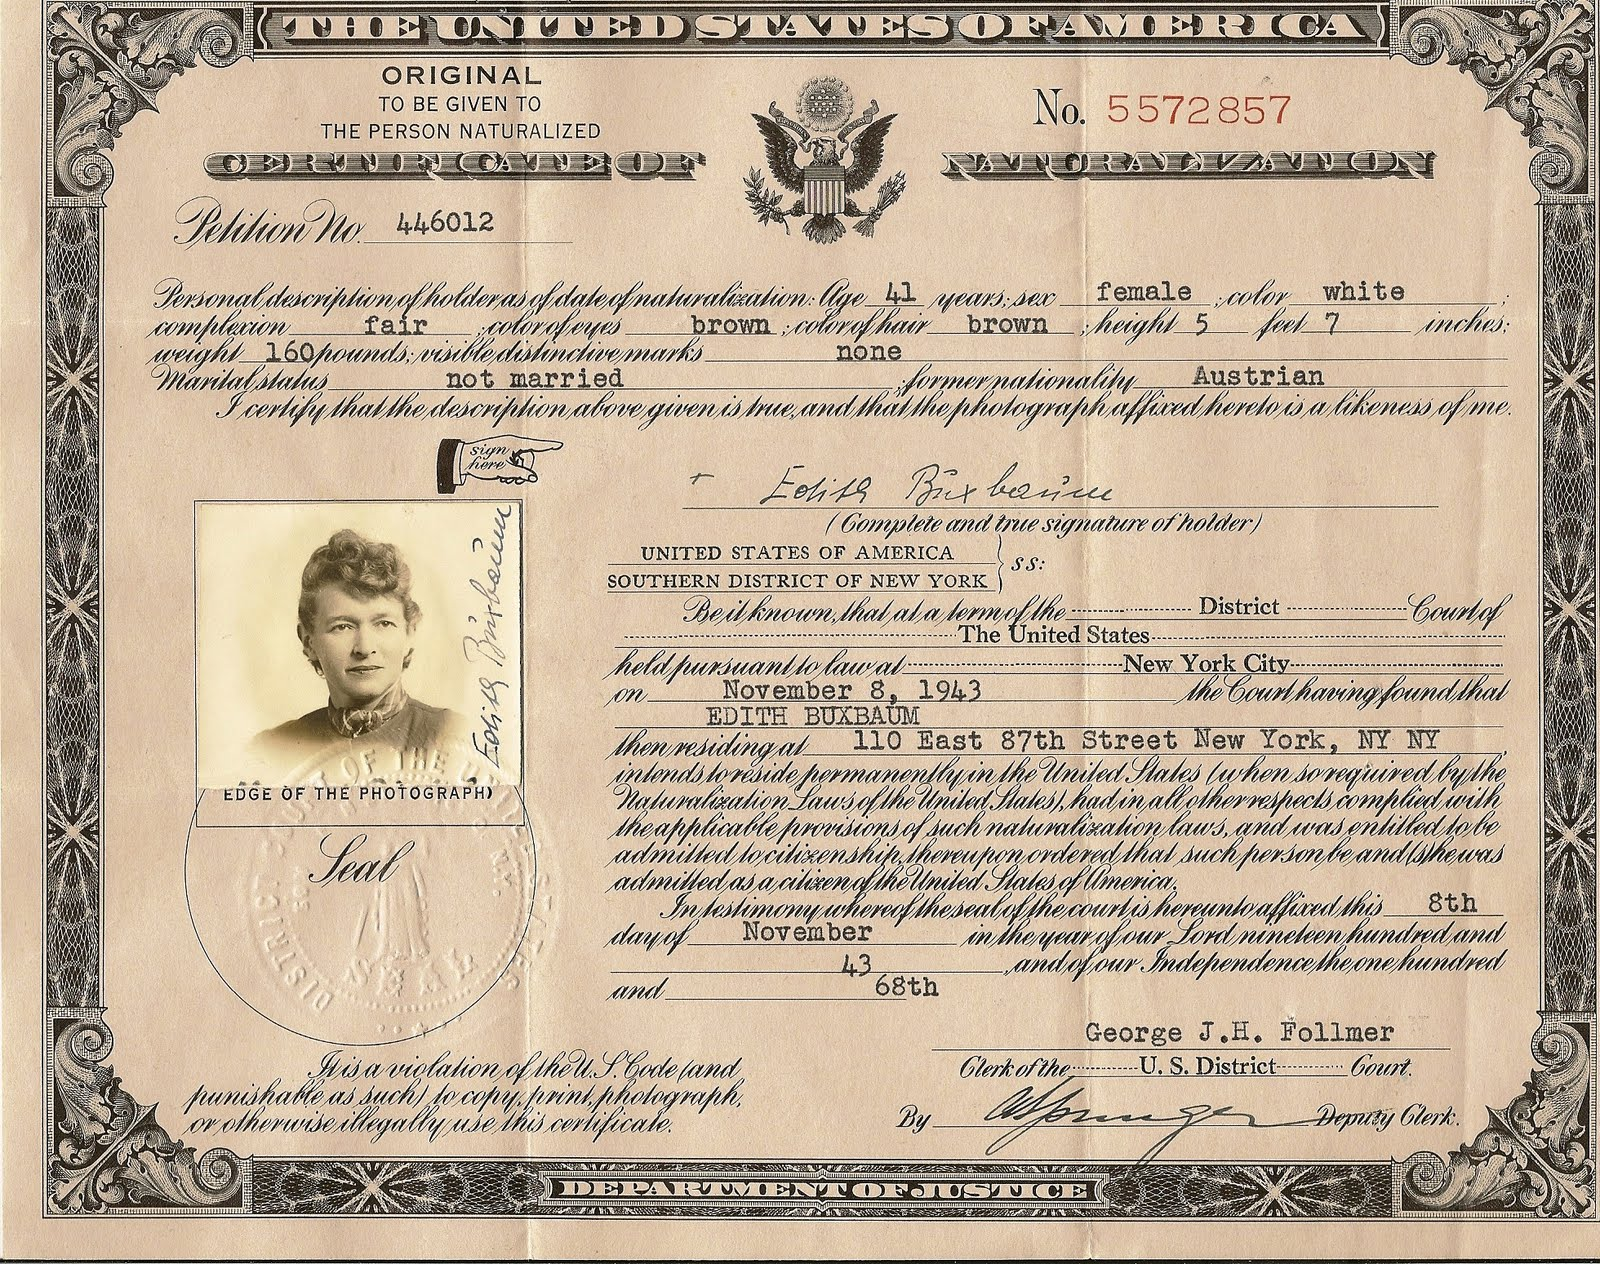 Edith buxbaum phd 1902 1982 she led with her mind edith buxbaum phd 1902 1982 she led with her mind naturalization certificates ny addresses margaret mahler a drivers license xflitez Images